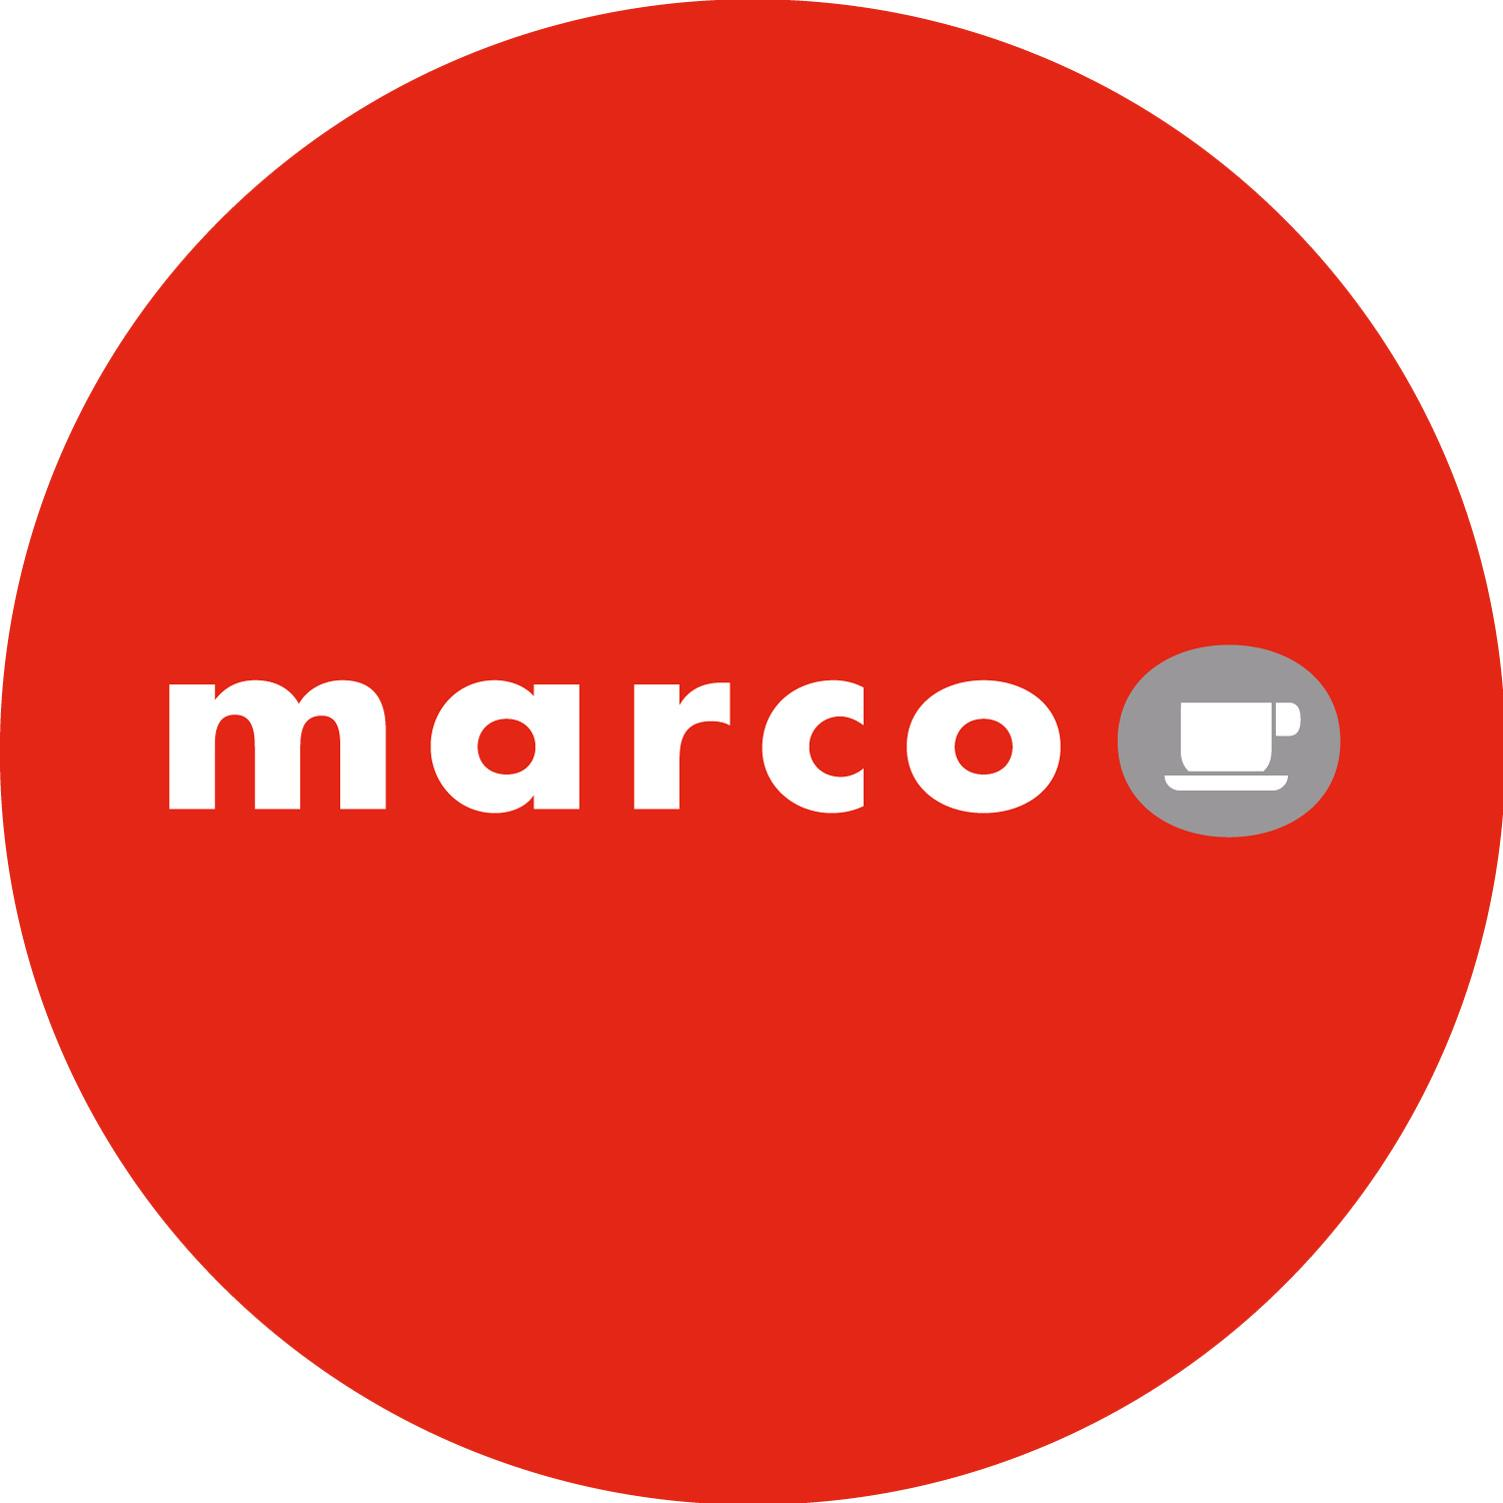 Marco Beverage Systems LTD